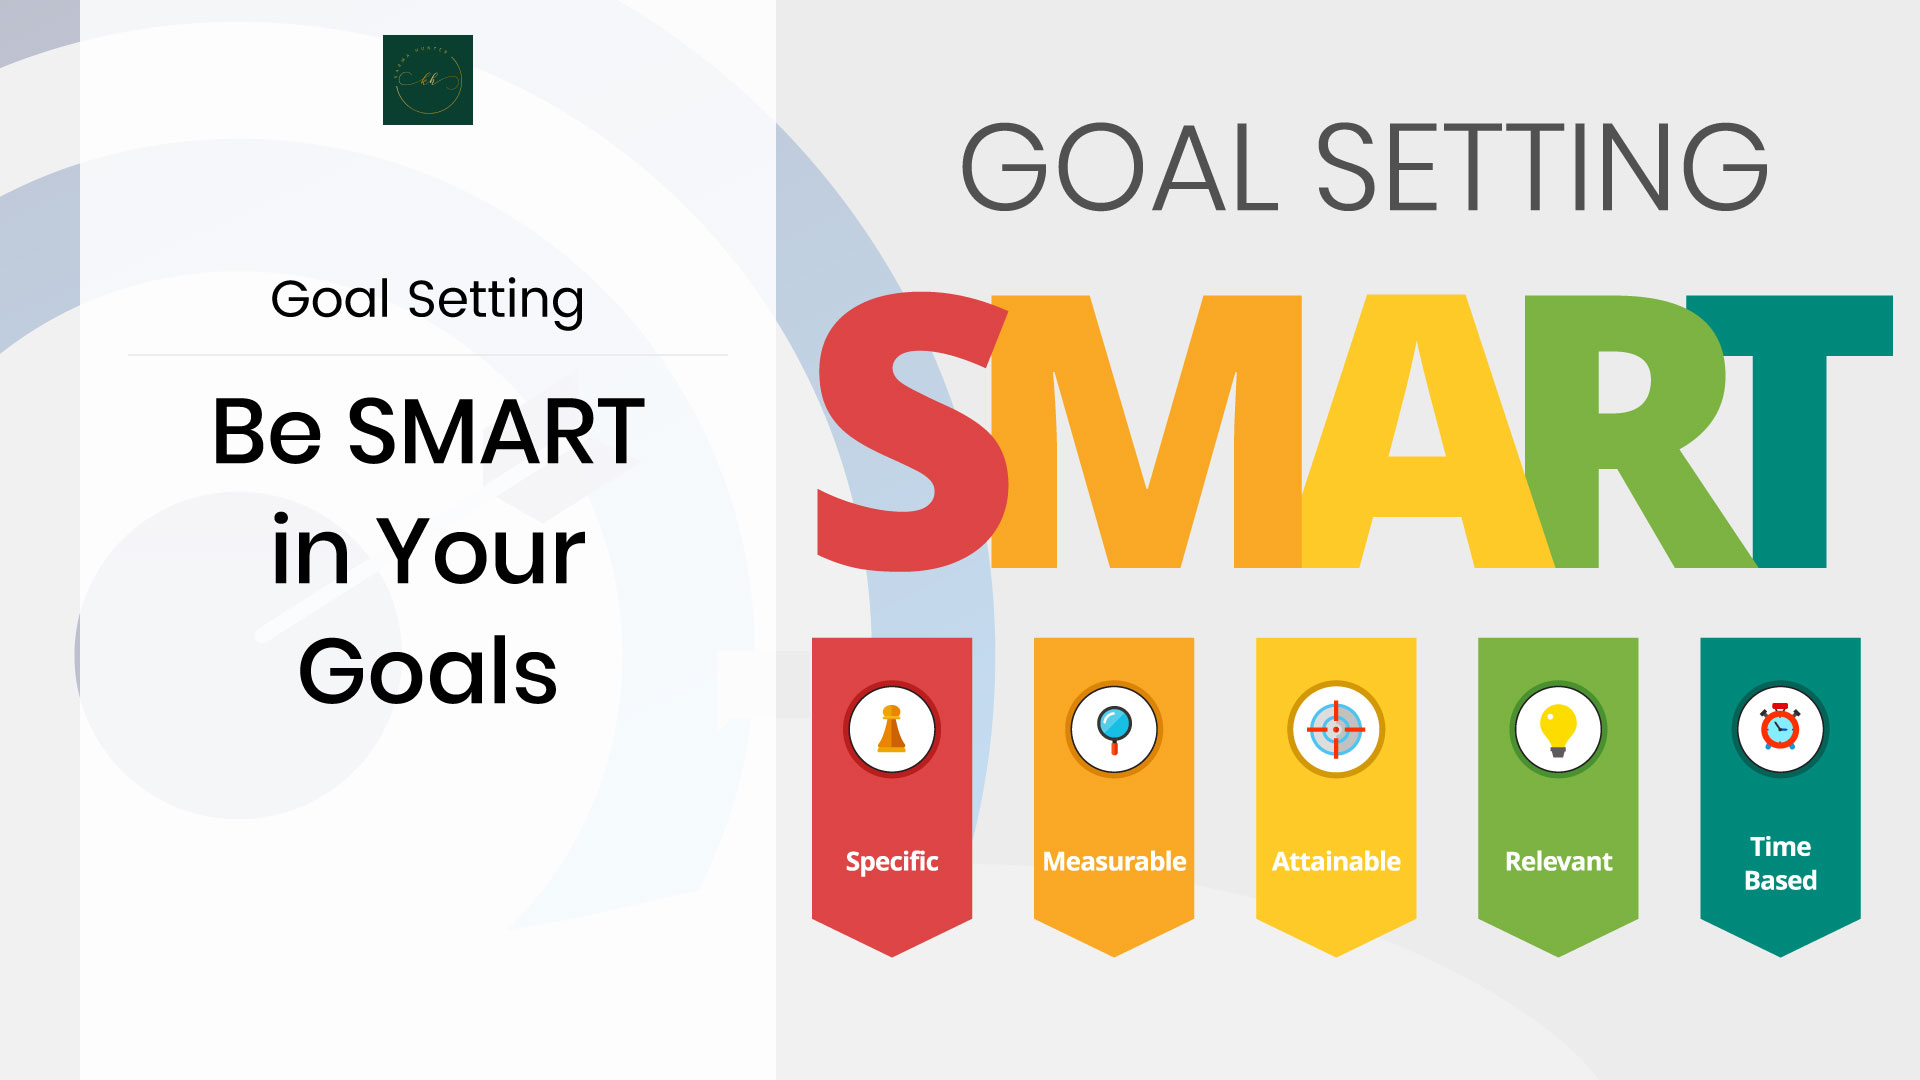 Personal Goal Setting: Be SMART in Your Goals